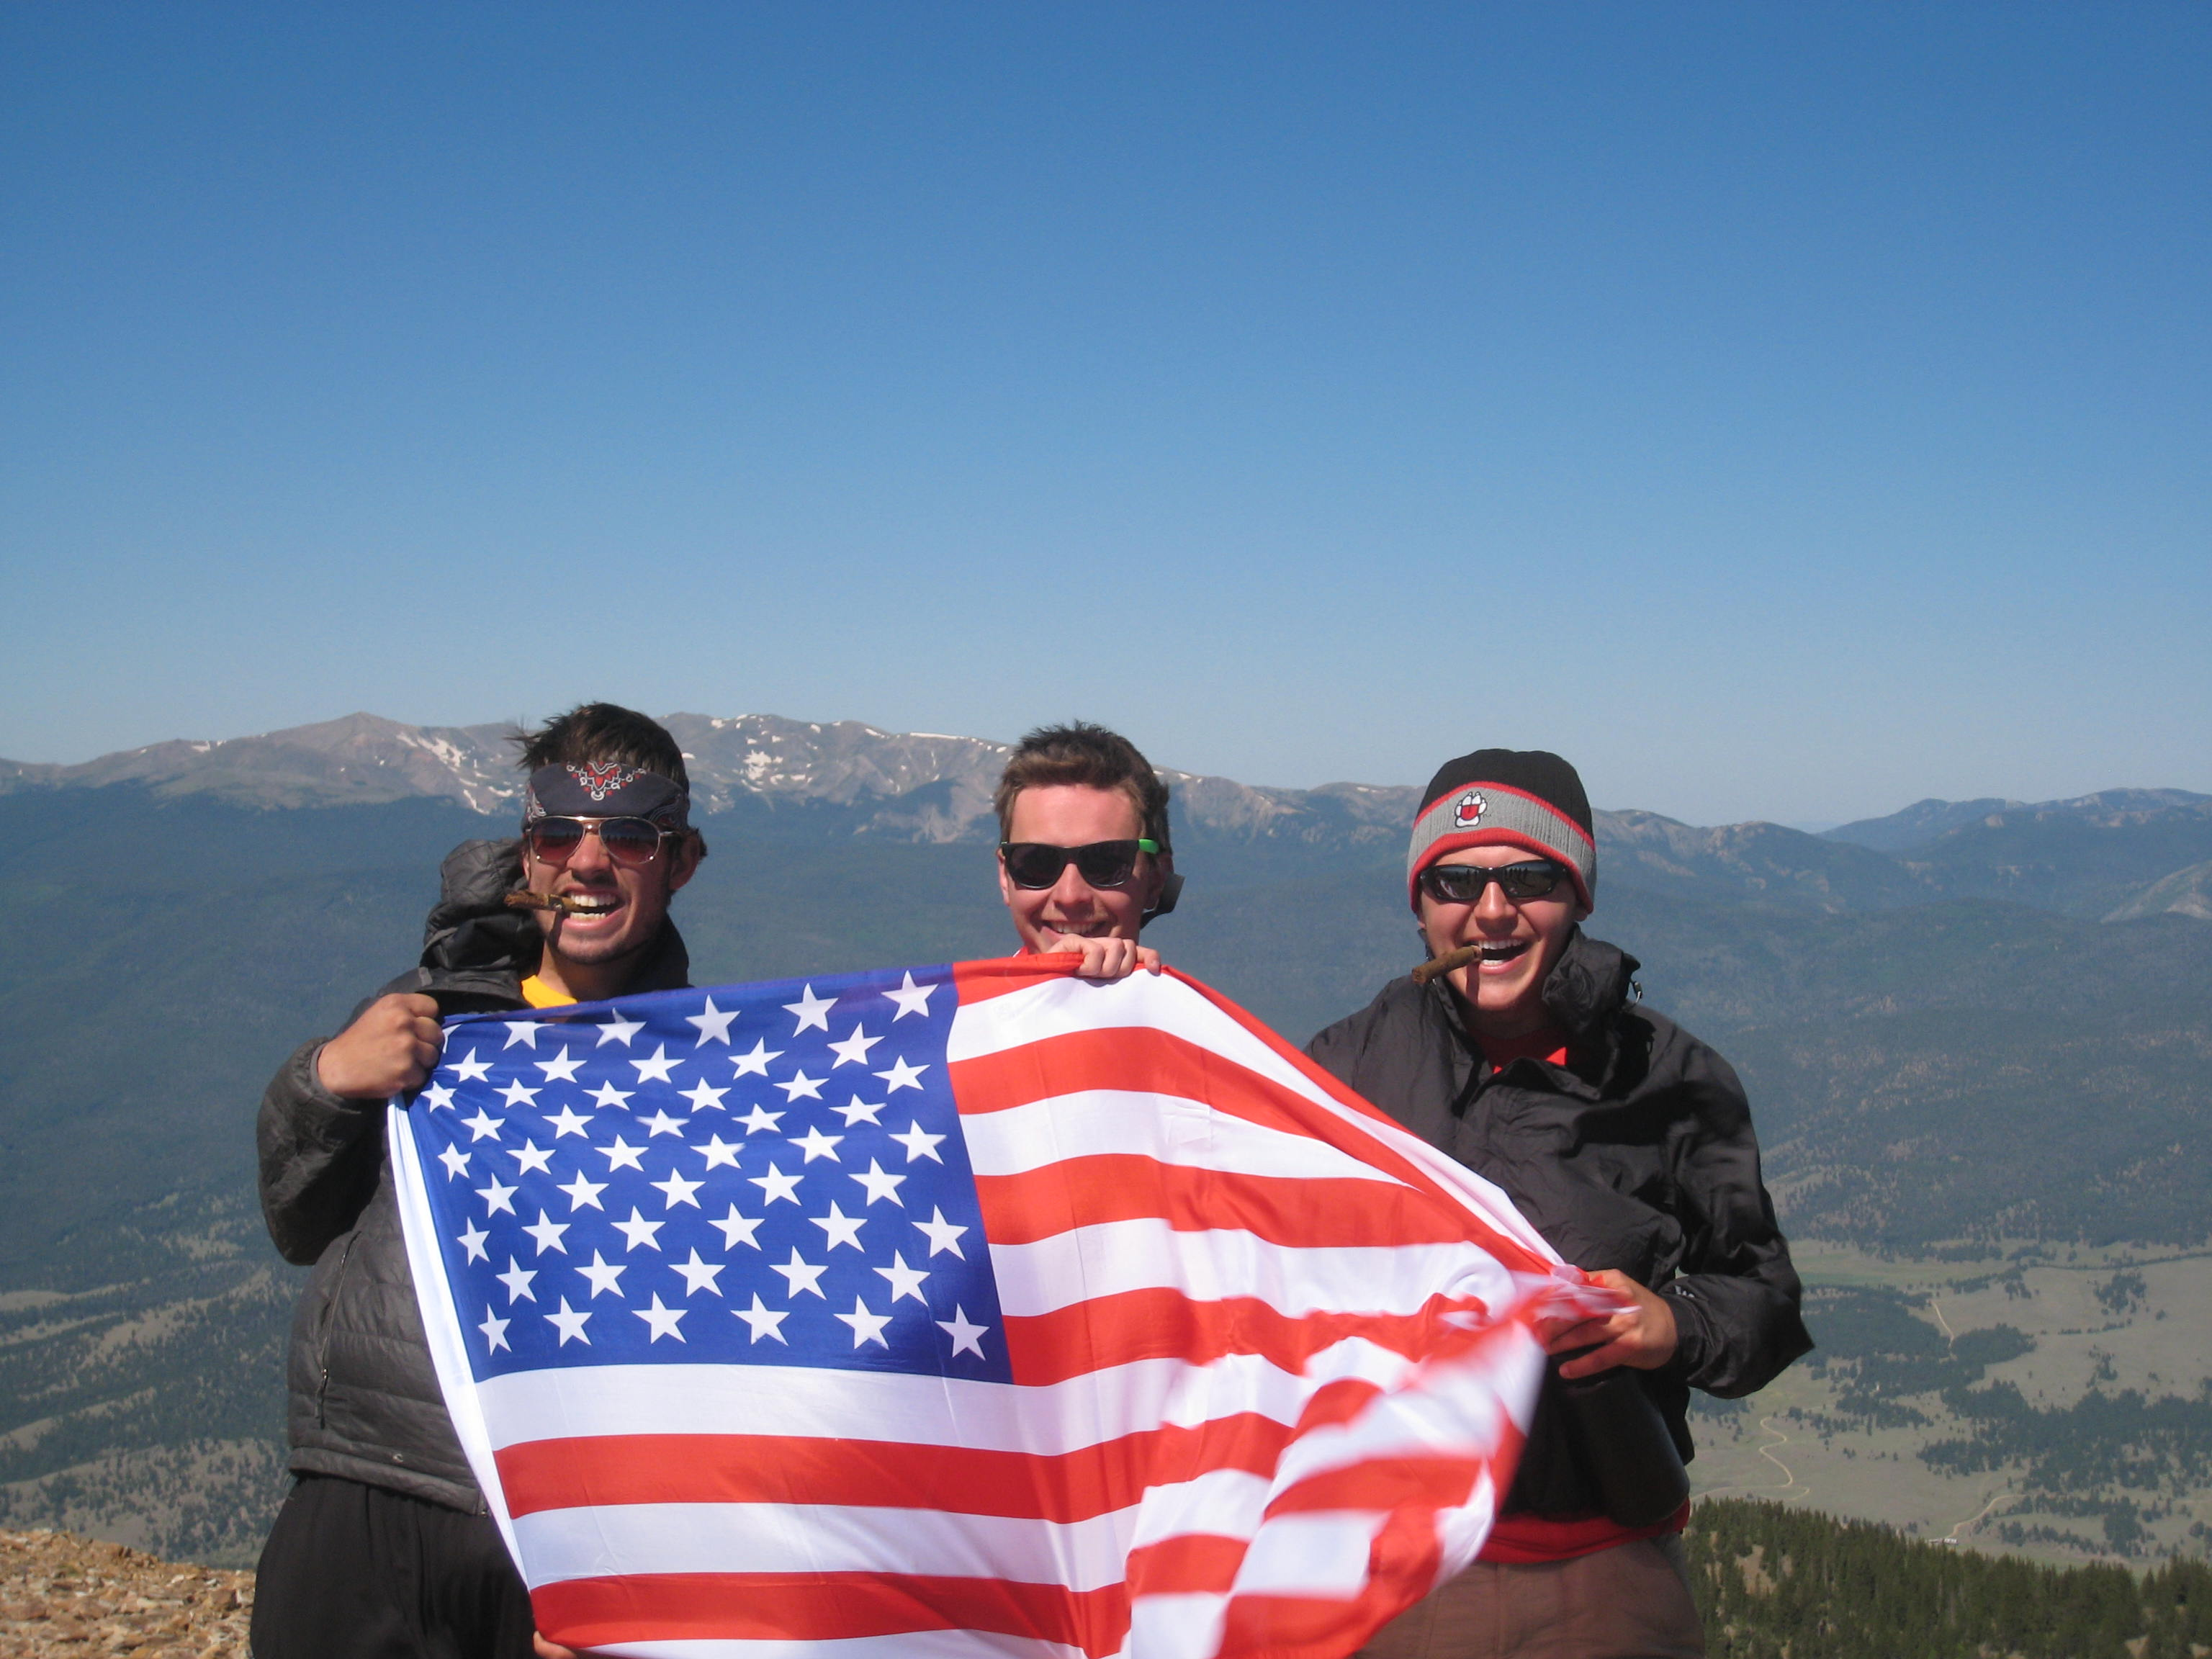 Cigars, Mountains, and America. TFM.